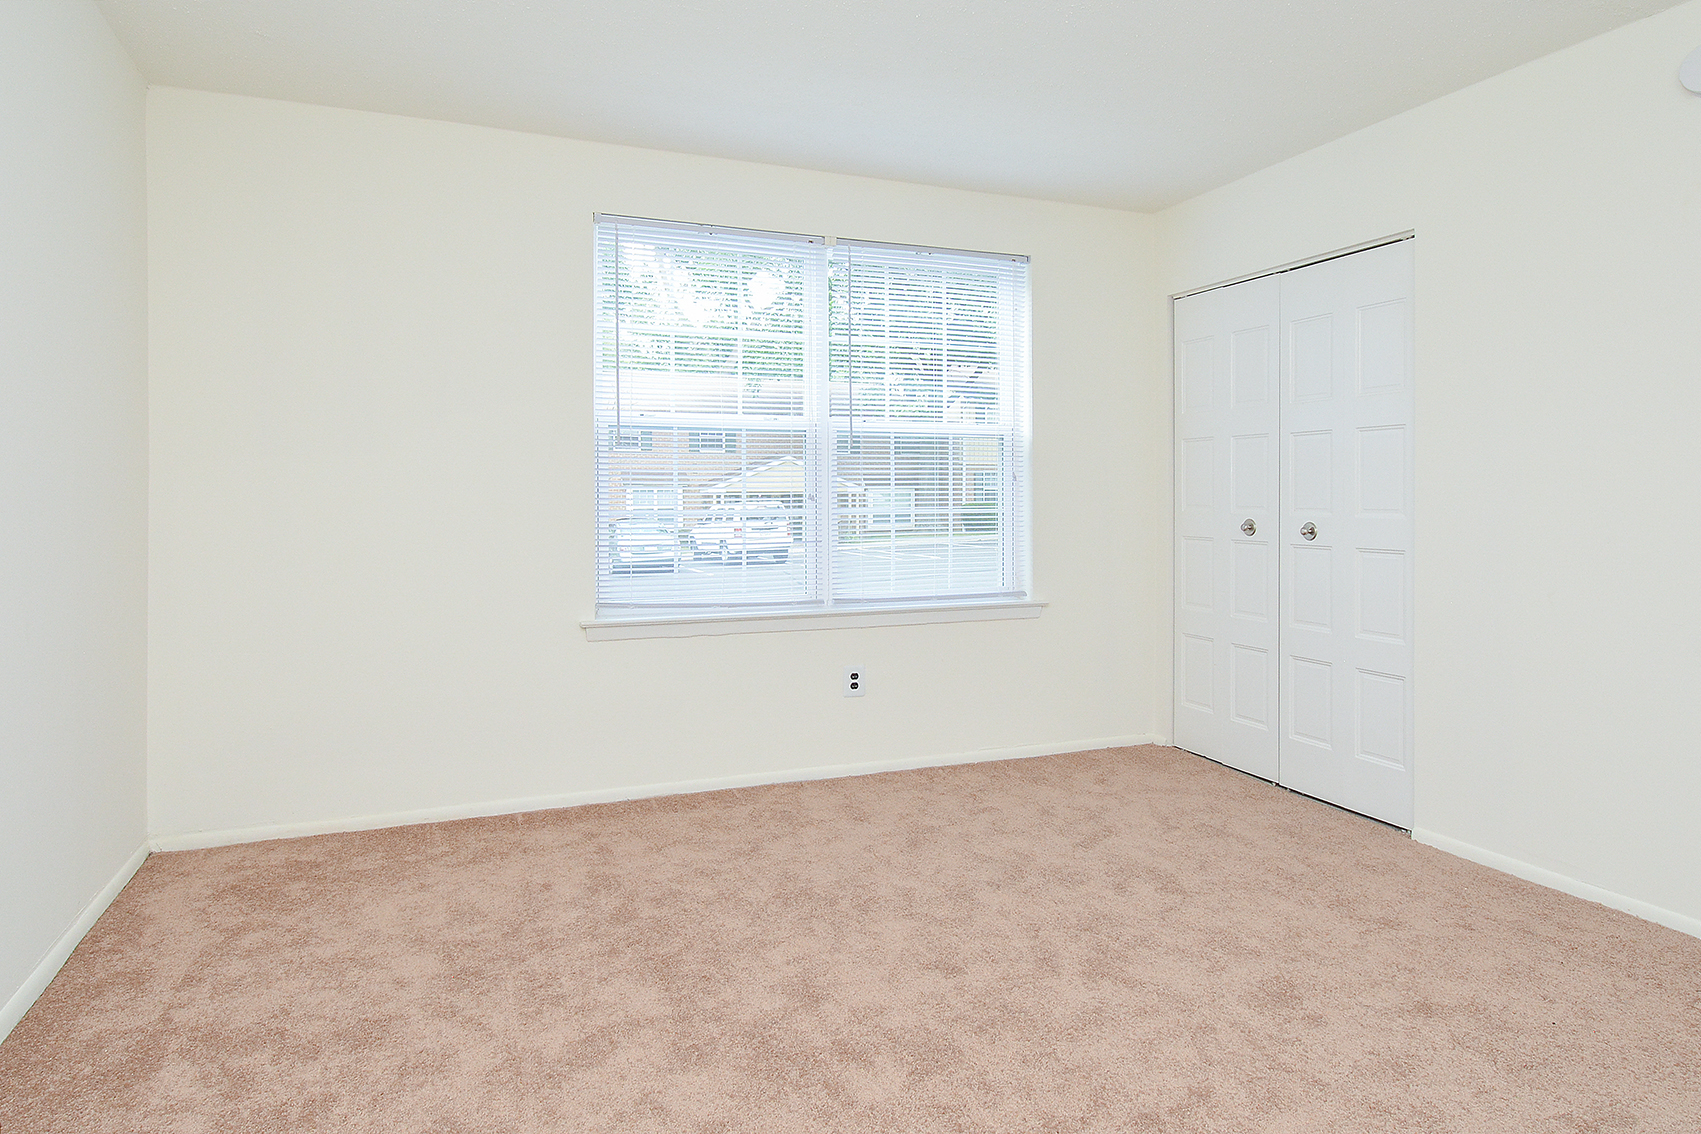 Spacious Master Bedroom   Apartments Homes for rent in Willow Grove, PA   Willow Run Apartments